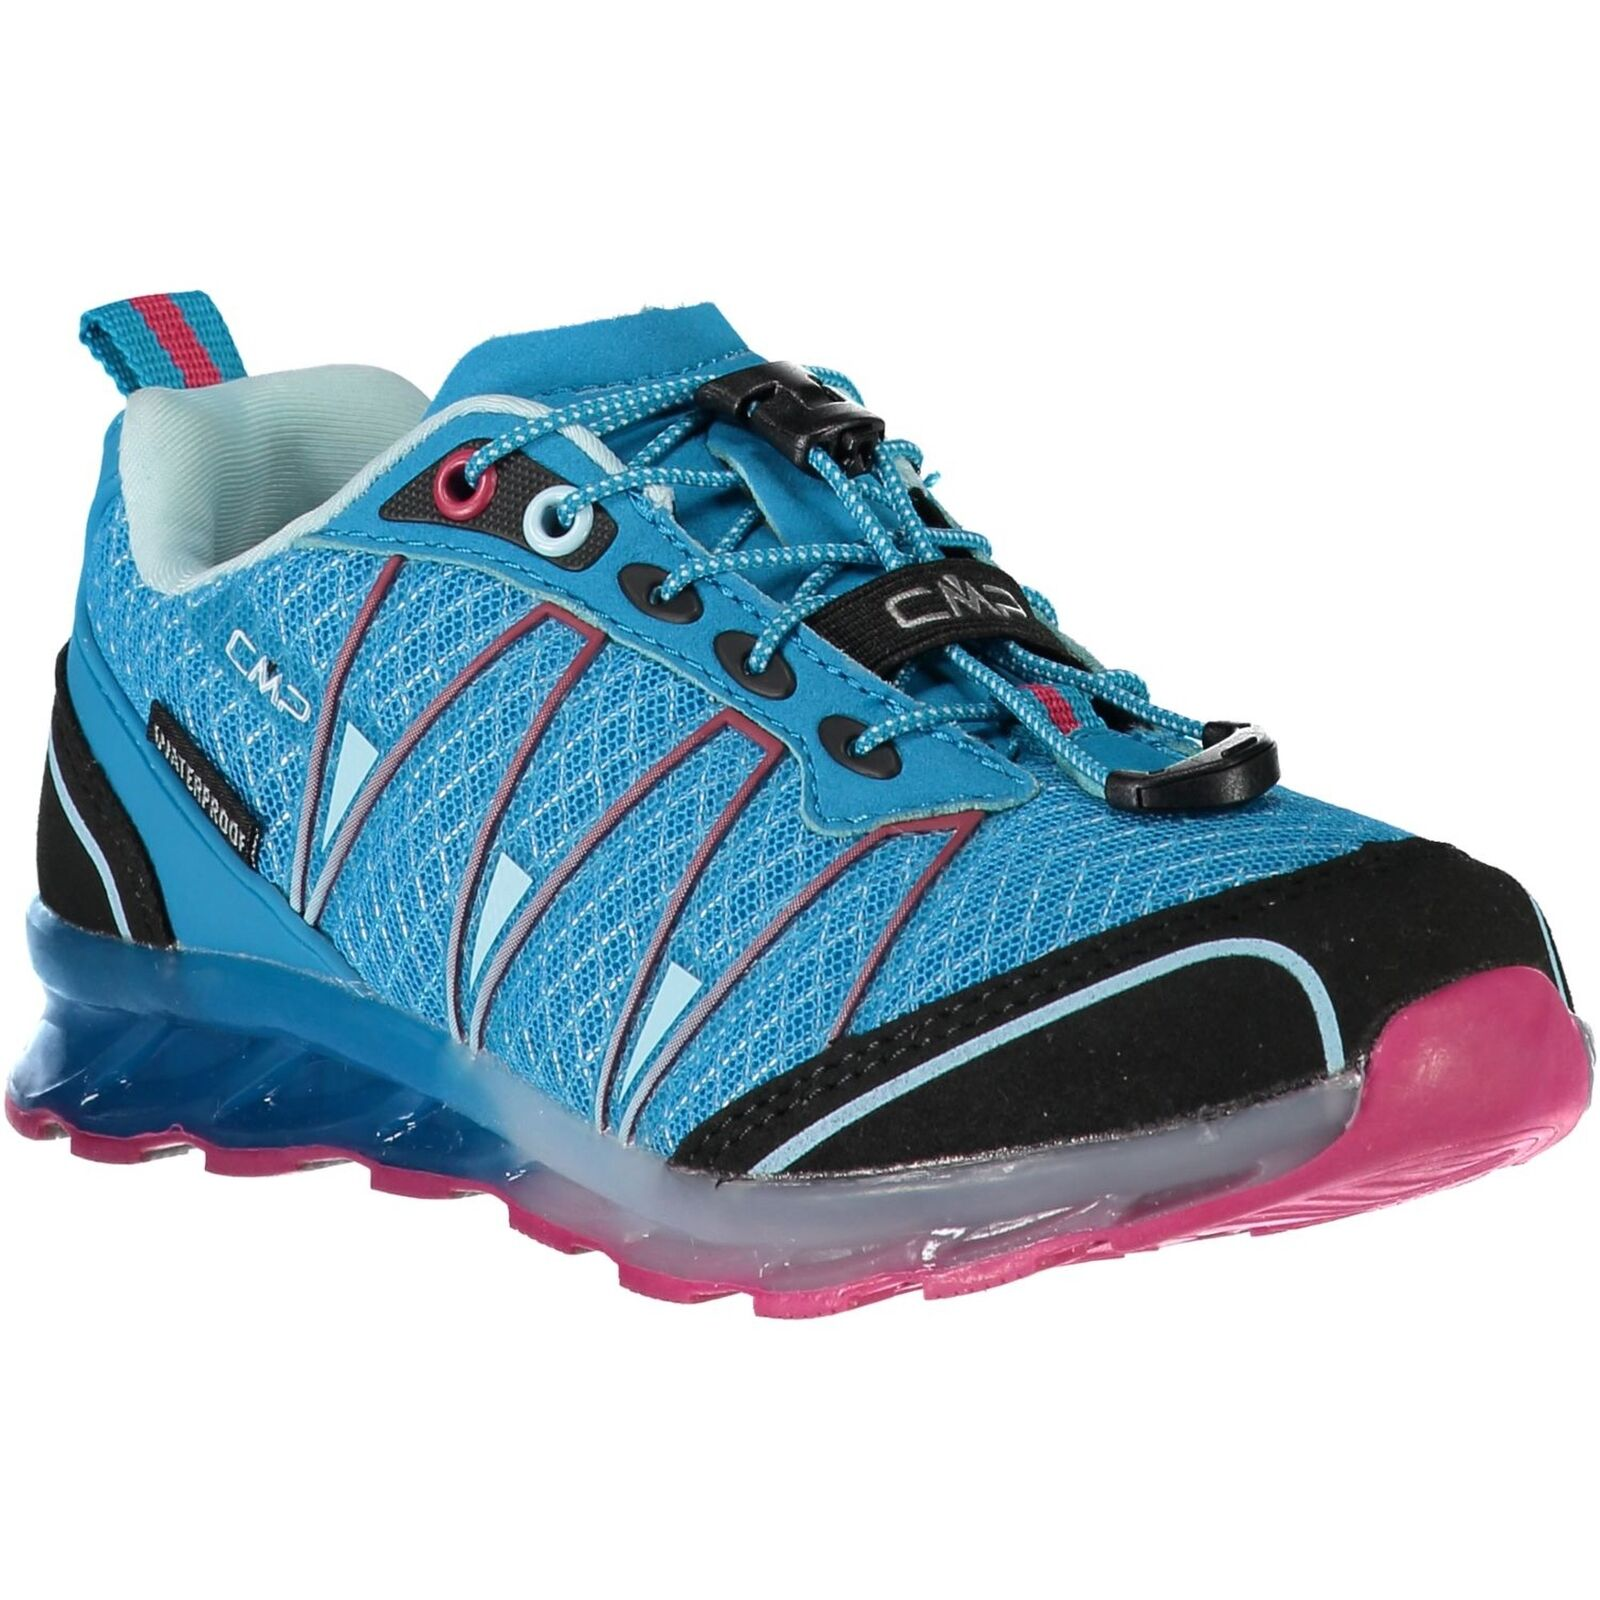 CMP running  shoes sport  ldren altak trail wp waterproof blue  all in high quality and low price